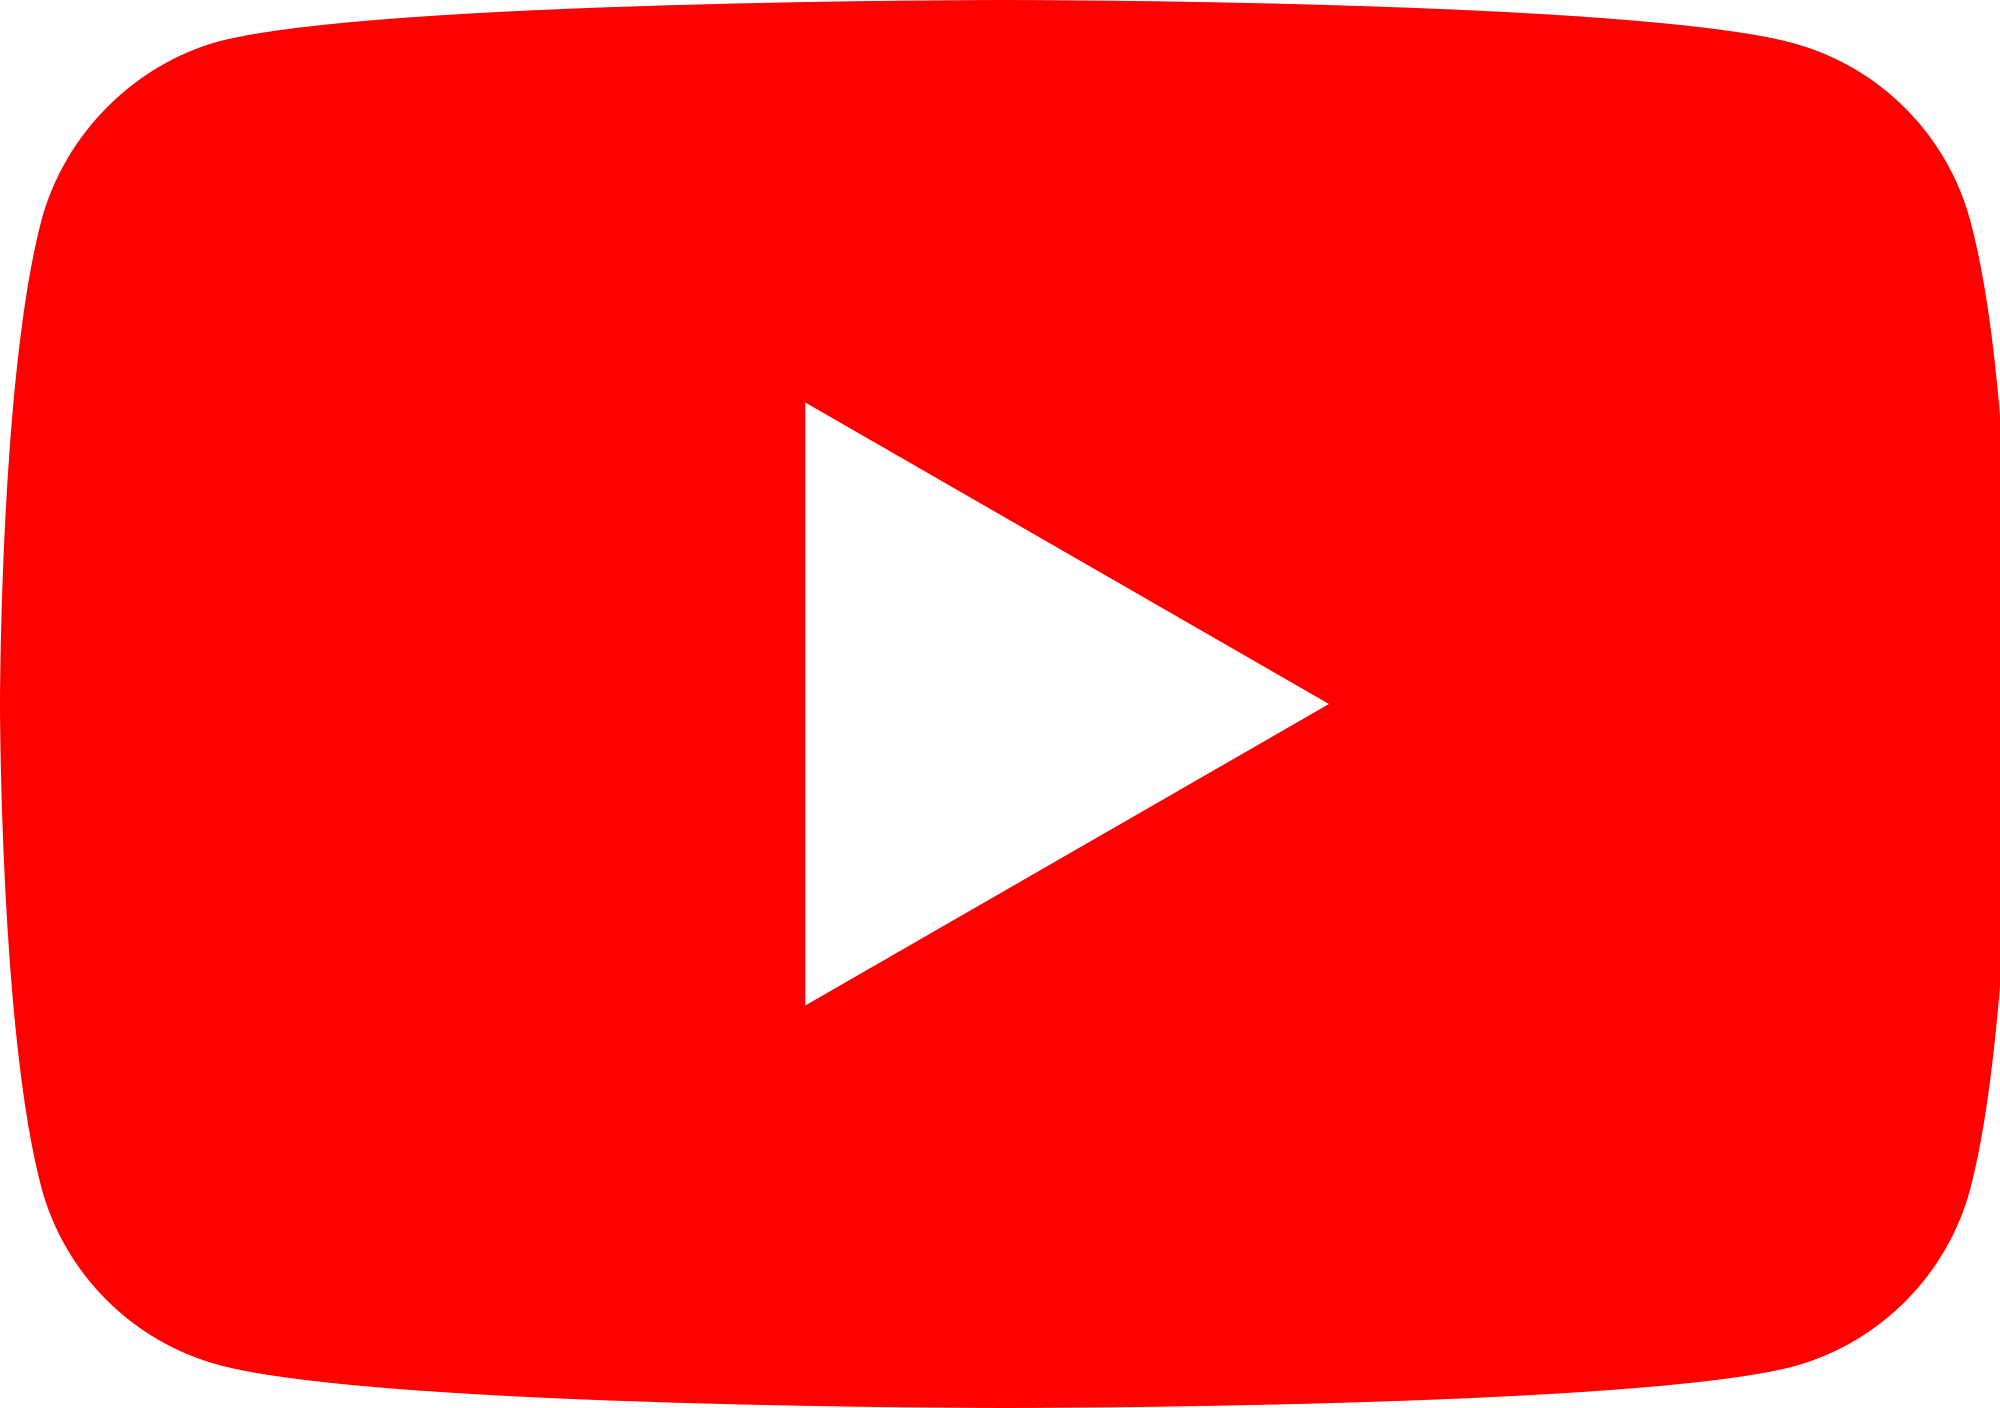 Youtube logo circle png. File full color icon